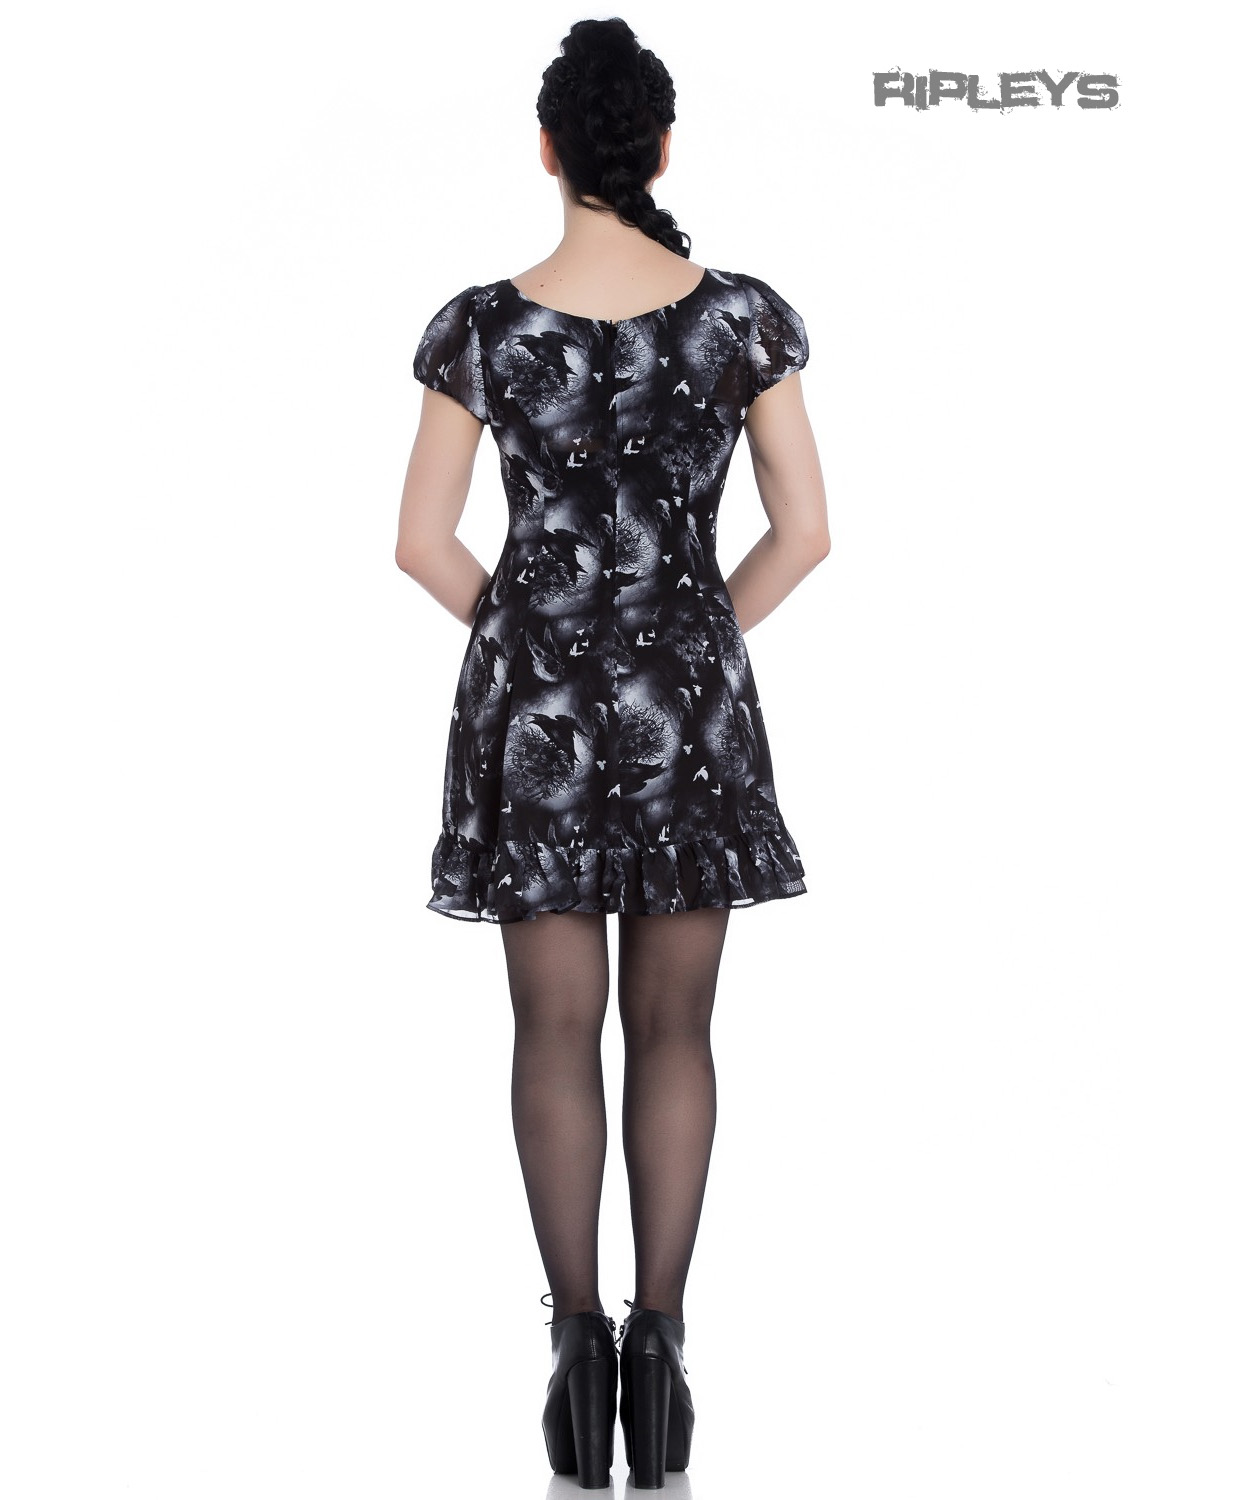 Hell-Bunny-Alchemy-Gothic-Black-Skater-Mini-Dress-ASH-Crows-Skulls-All-Sizes thumbnail 12